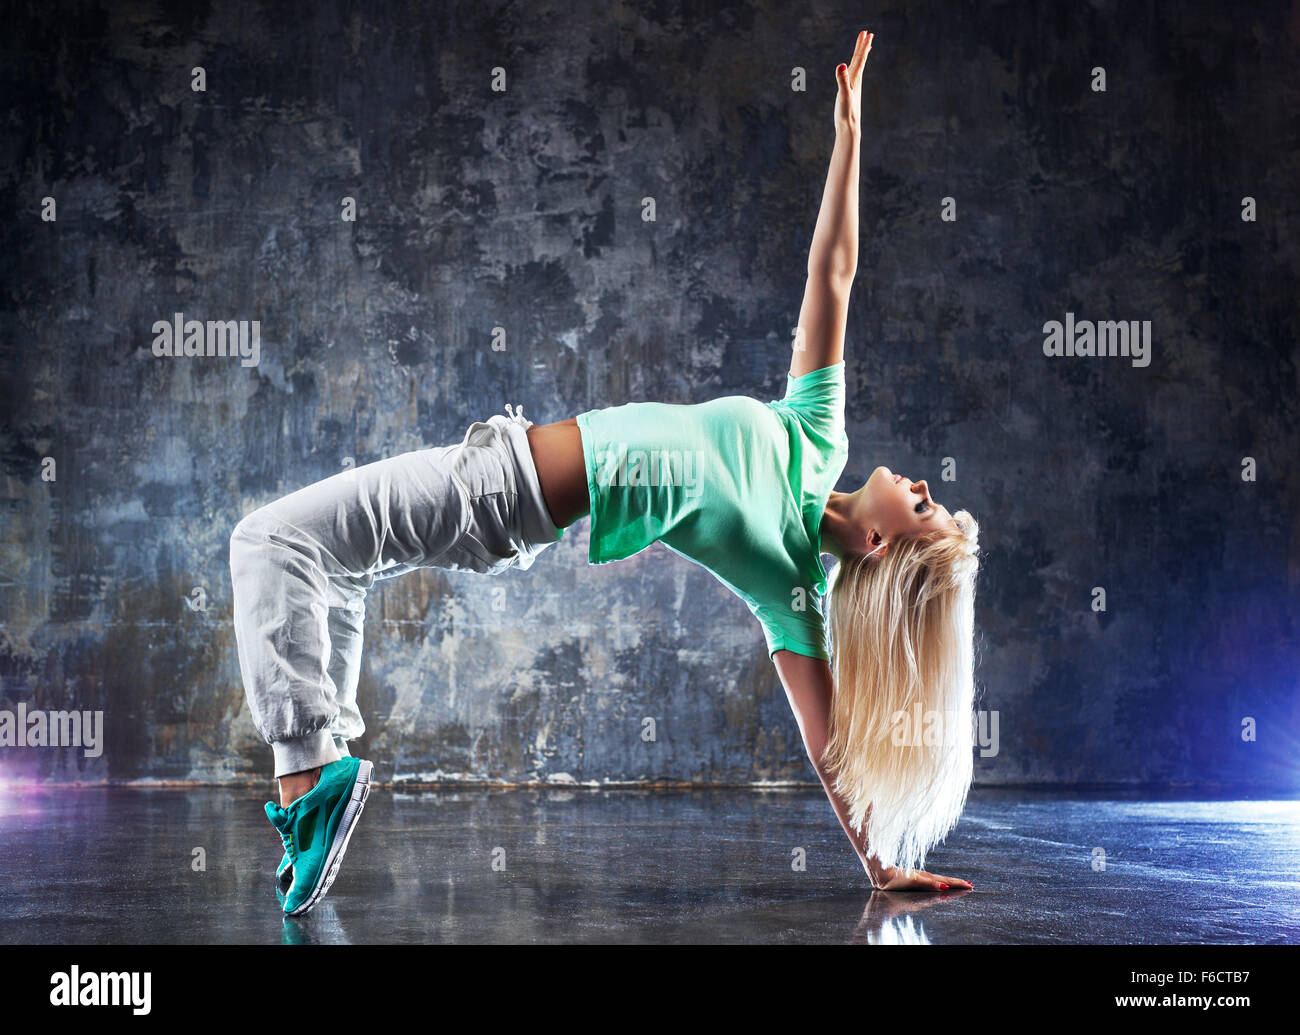 Young woman modern dancer. On dark stone wall background. - Stock Image